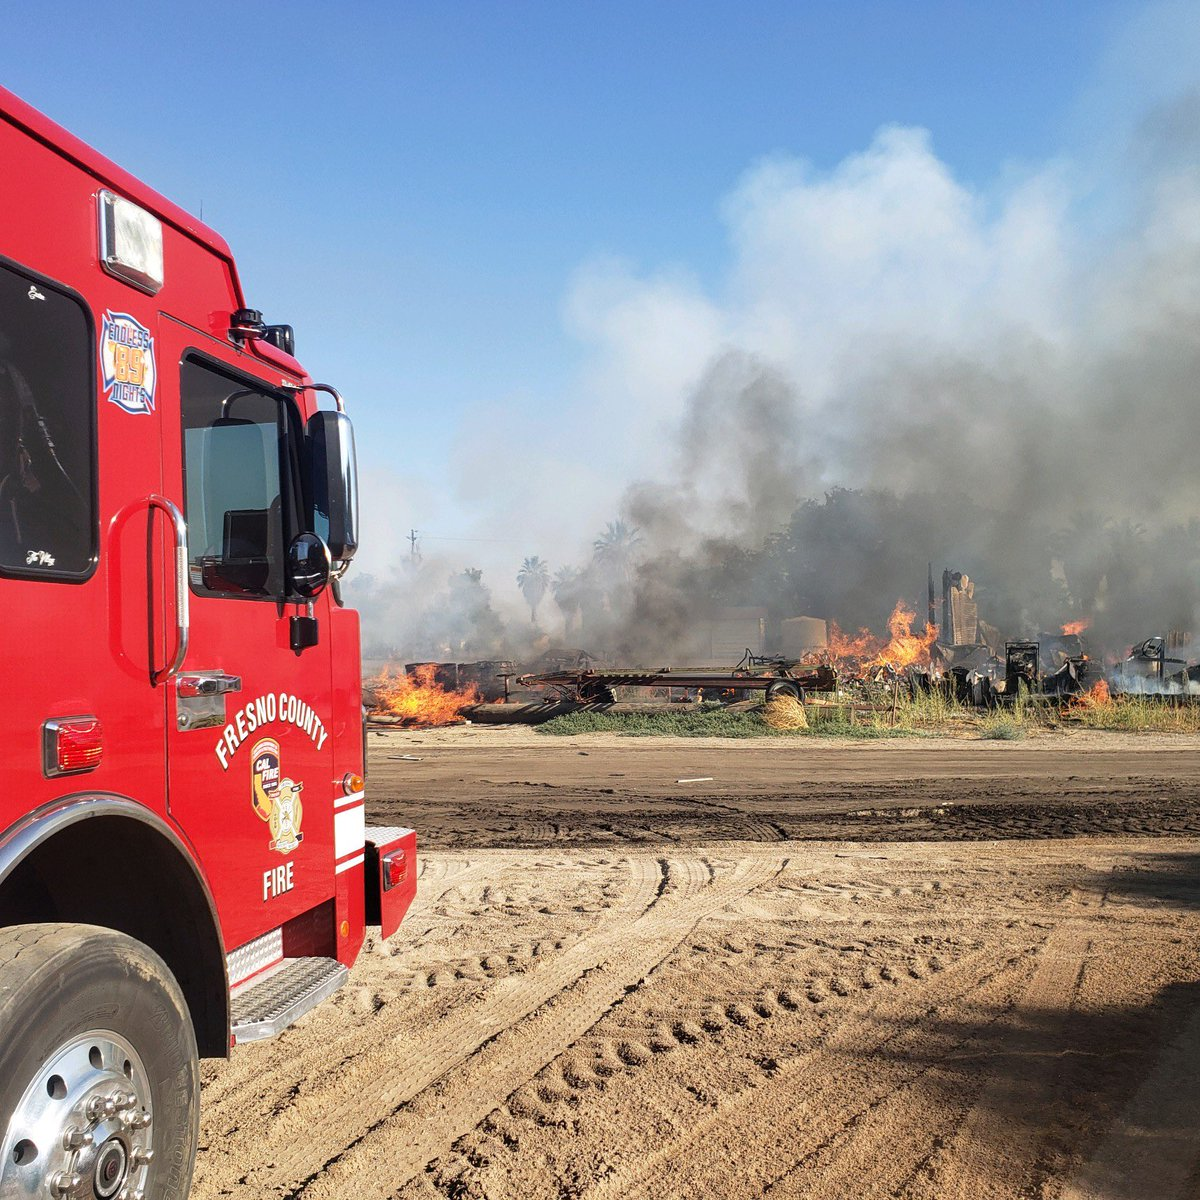 #DiegoIncident Fresno County Firefighters contained a commercial structure fire on San Diego x Jensen, southwest of Mendota. Crews on scene reported a 10k sqft shop well involved with fire, crews faced limited water supply & hot weather. No injuries, cause under investigation.